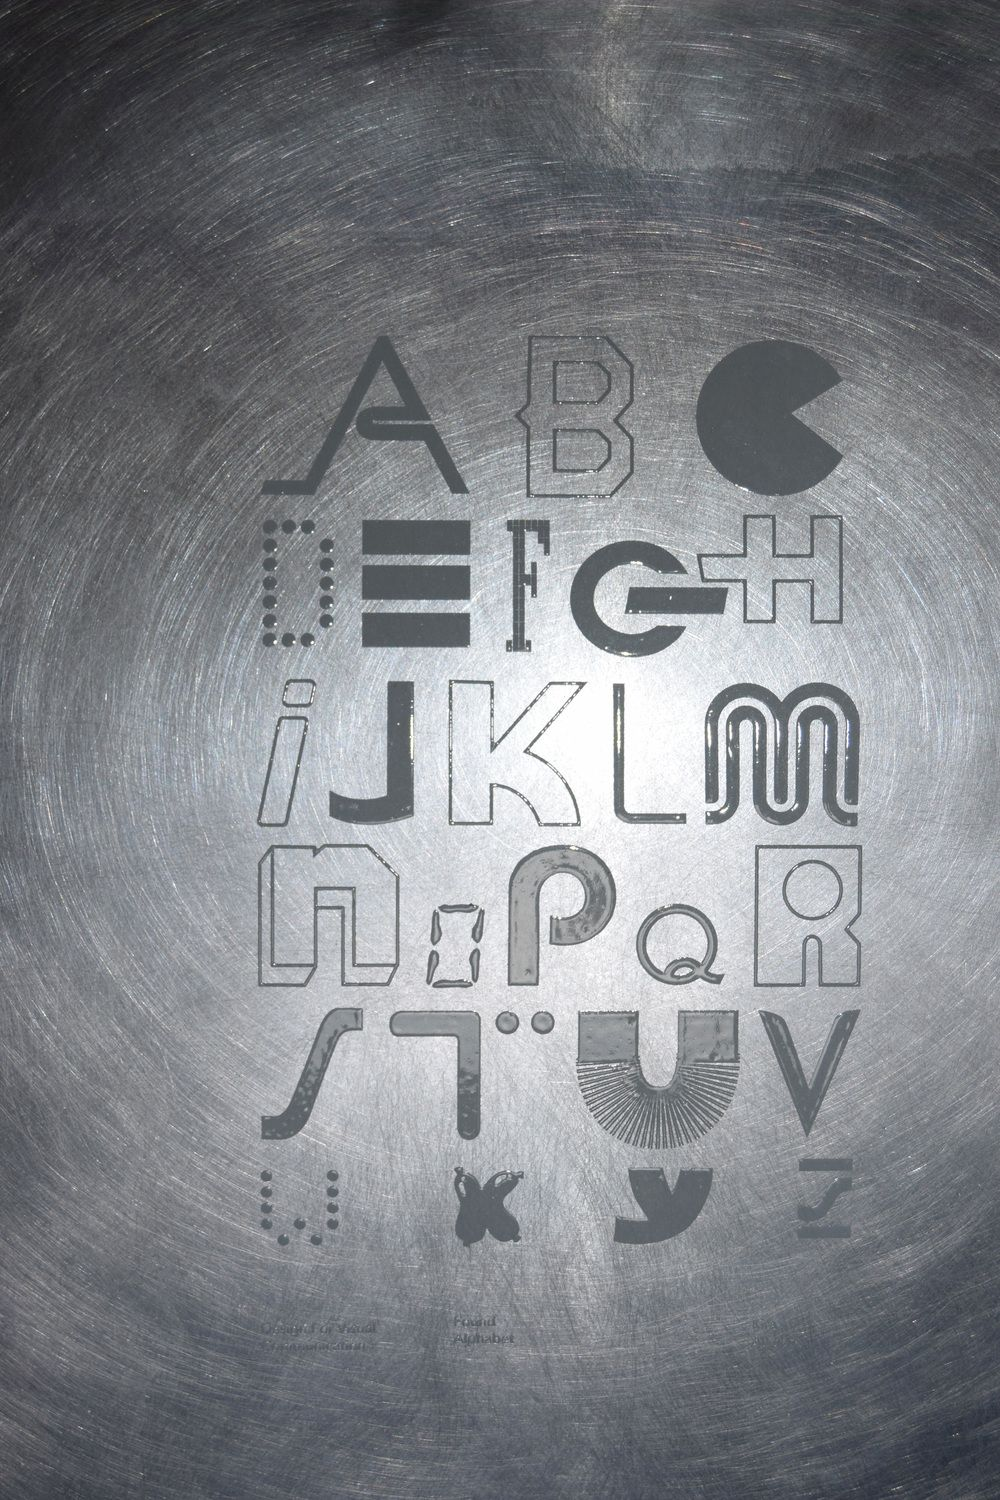 Kira Almarks found alphabet printed with thermographic ink on metal